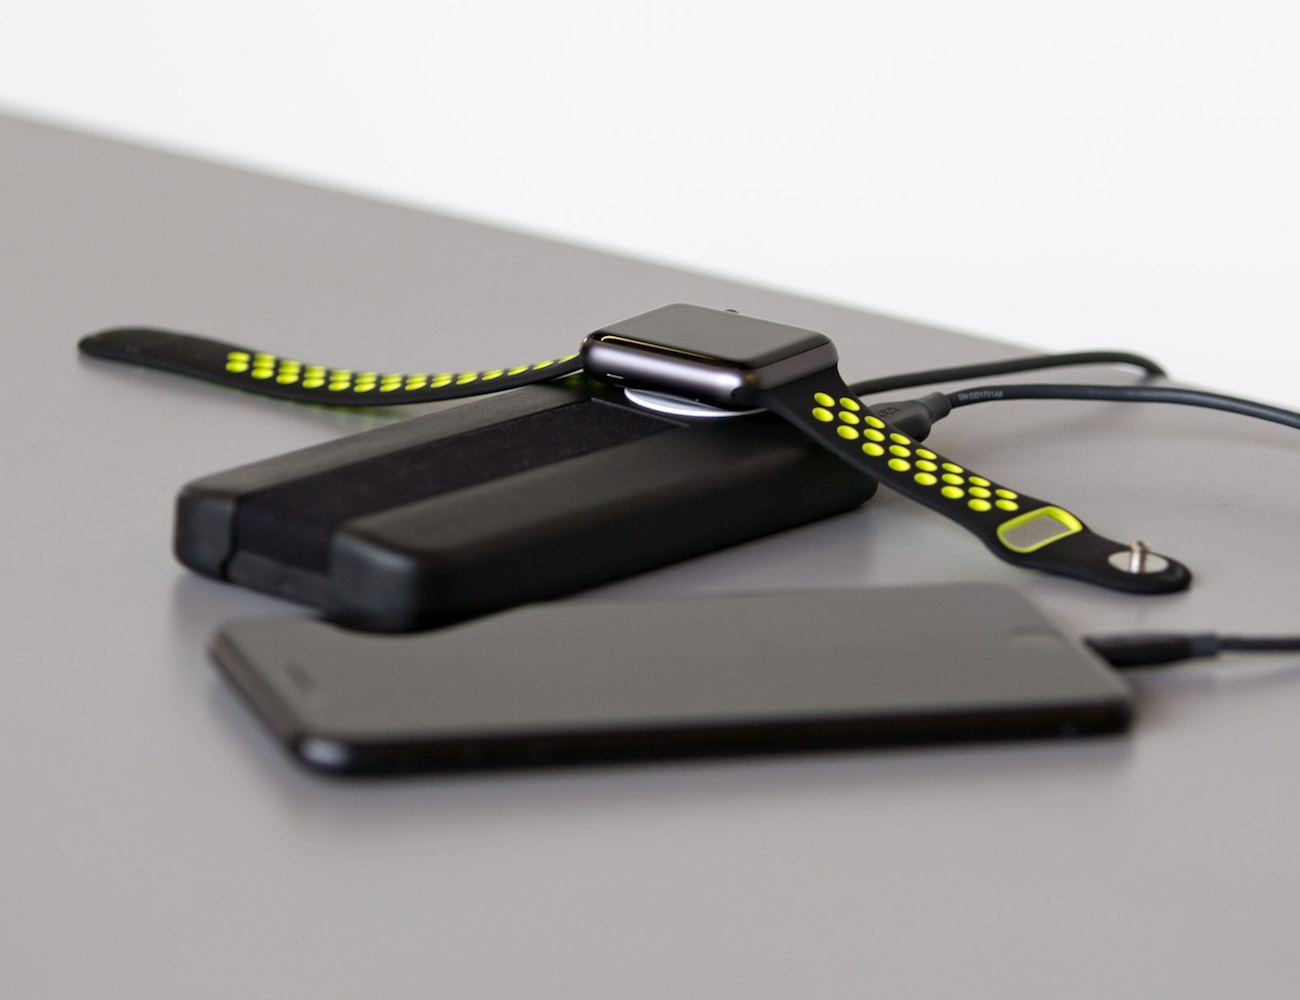 BatteryPro Apple Watch Portable Charger